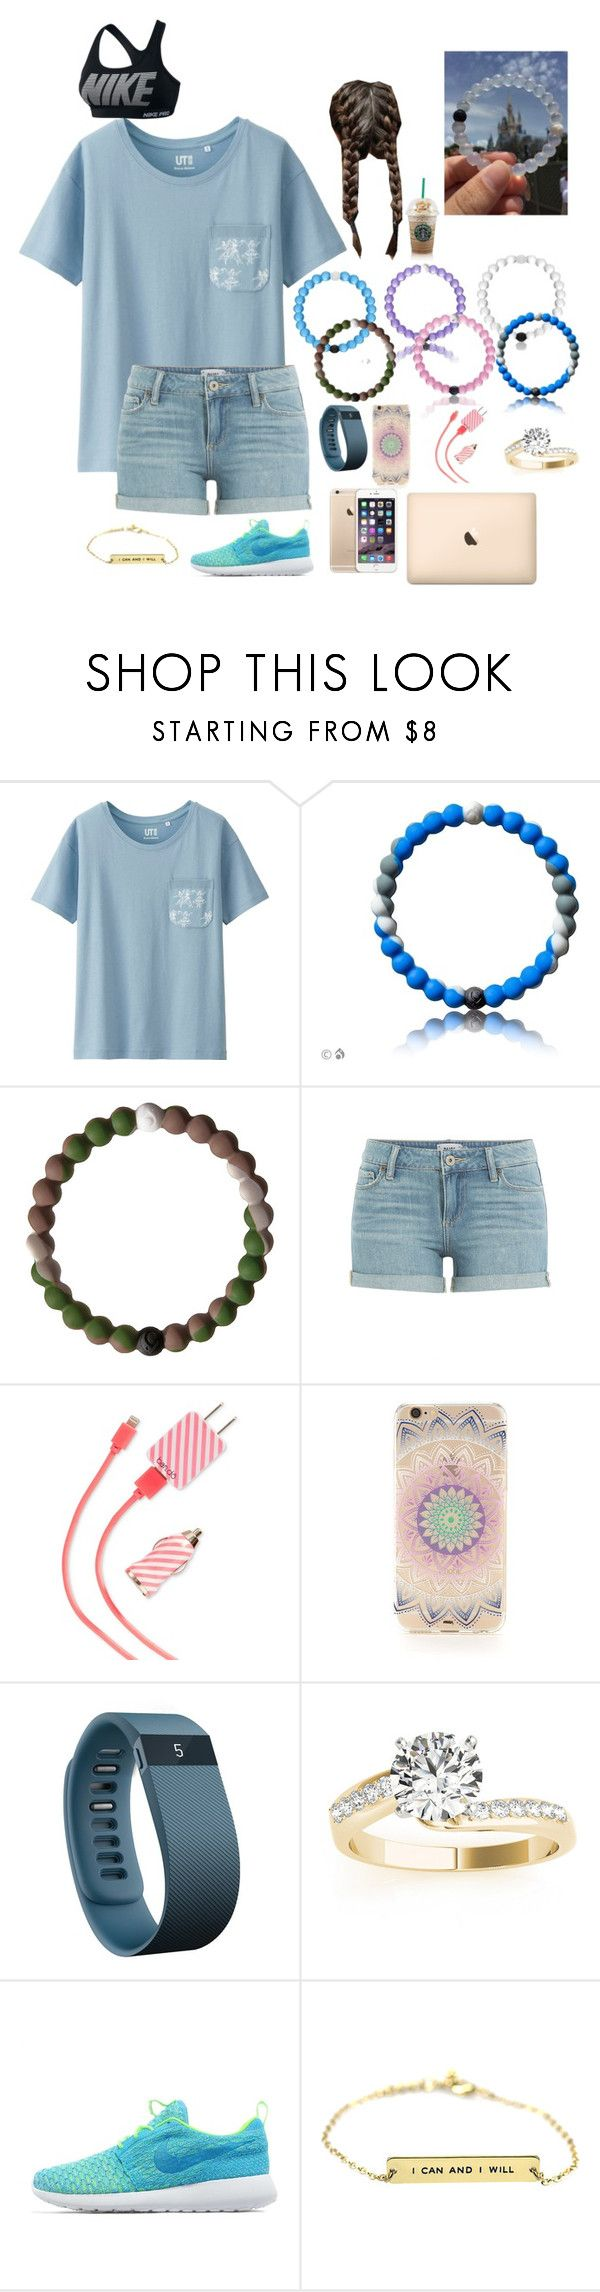 """""""Untitled #284"""" by mackenzielacy814 ❤ liked on Polyvore featuring Uniqlo, Everest, Paige Denim, ban.do, Forever 21, Fitbit, Allurez and NIKE"""